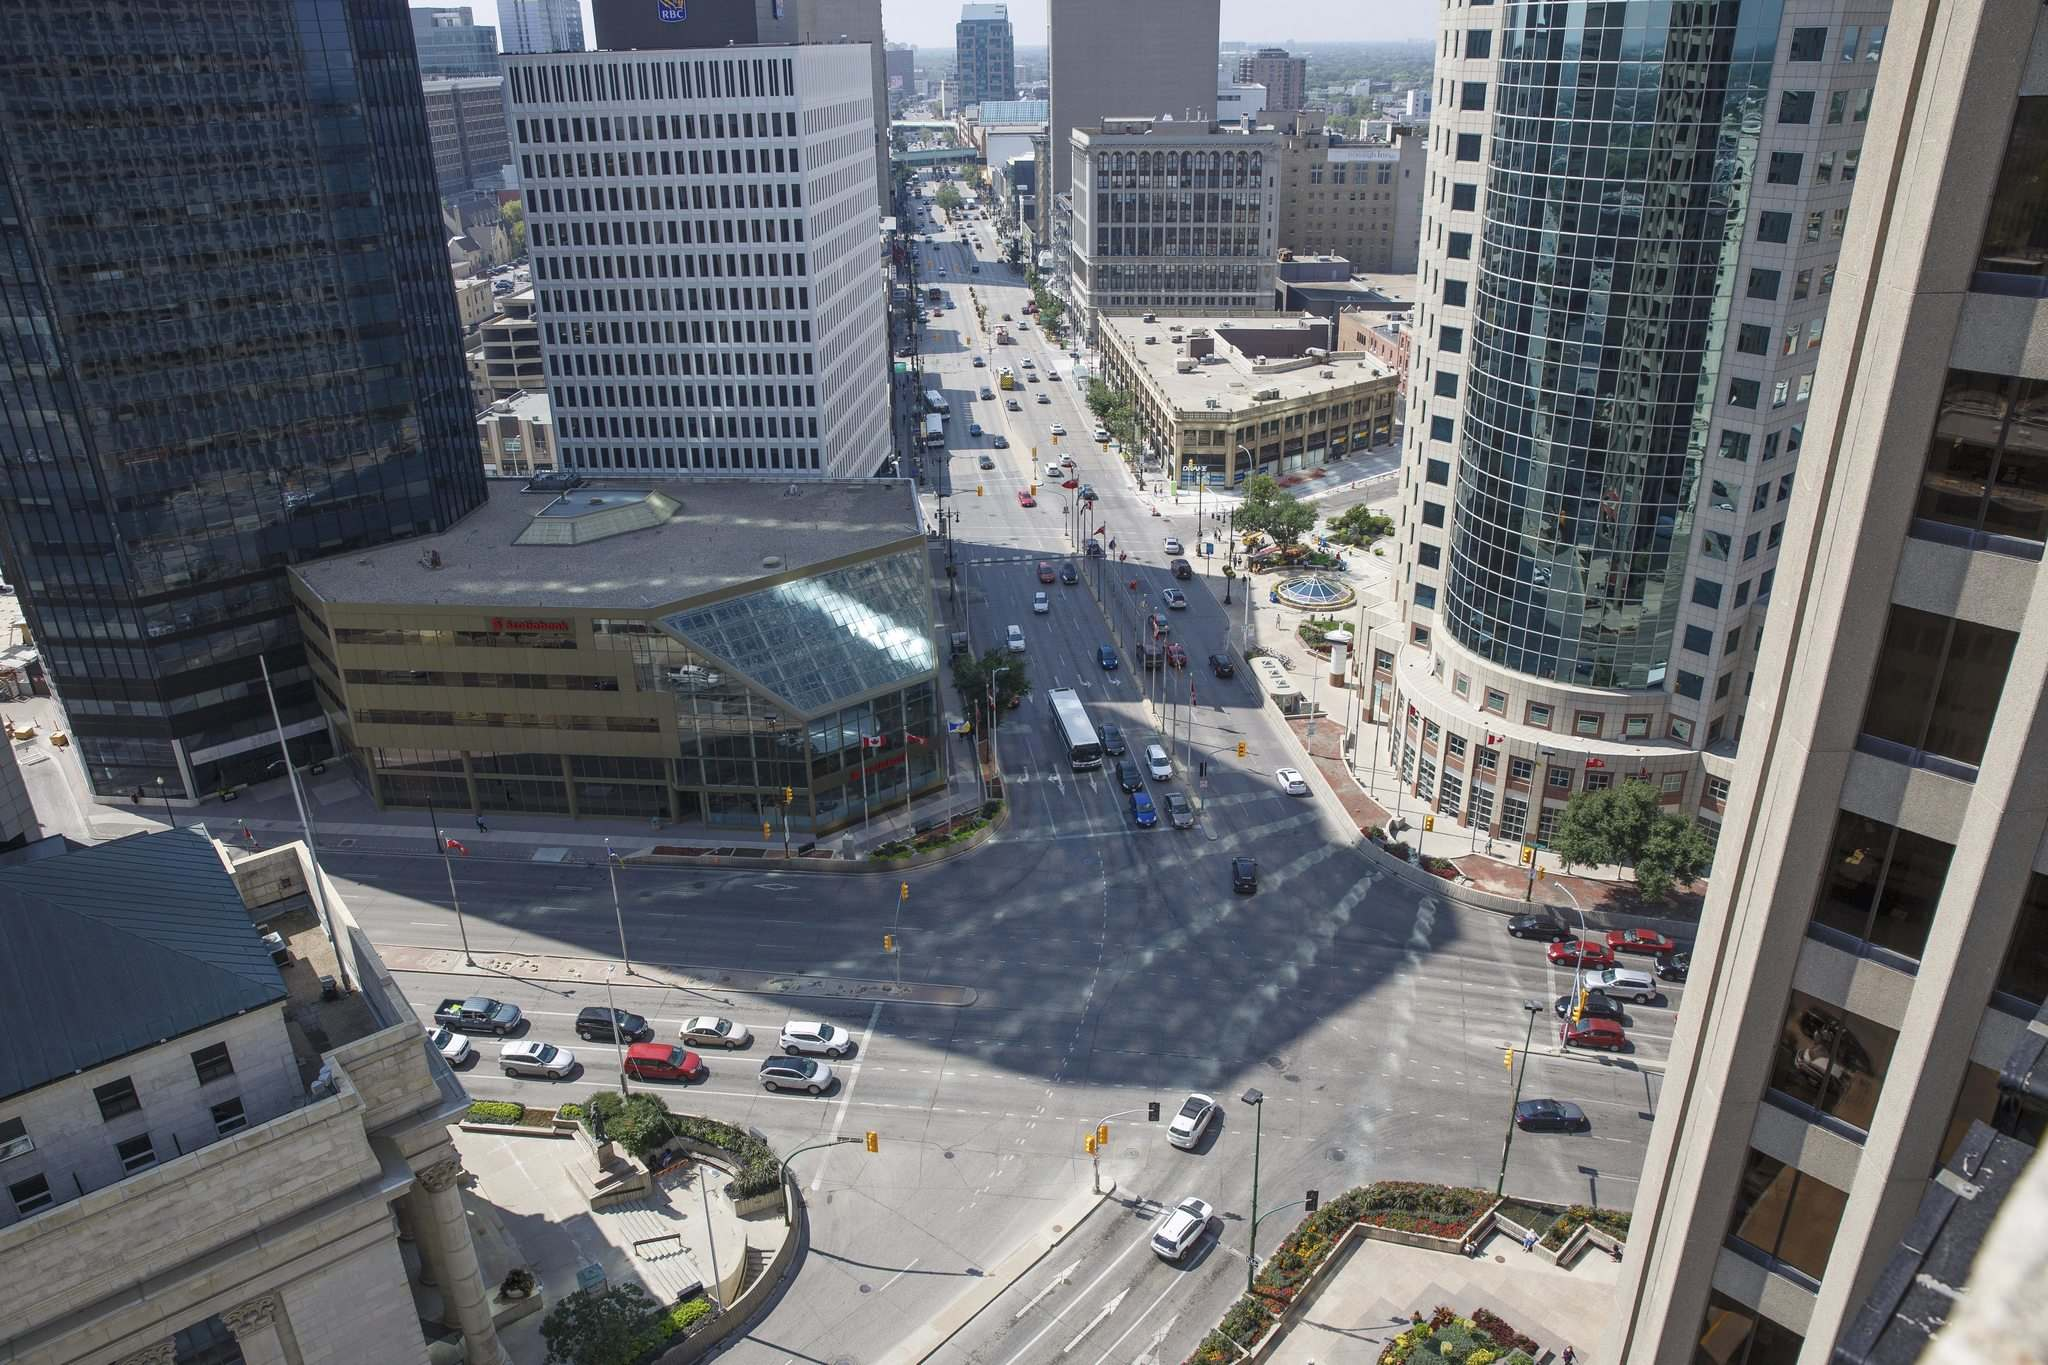 MIKE DEAL / WINNIPEG FREE PRESS FILES</p><p>The intersection of Portage Avenue and Main Street as seen from the roof of the Fairmont Hotel.</p></p>